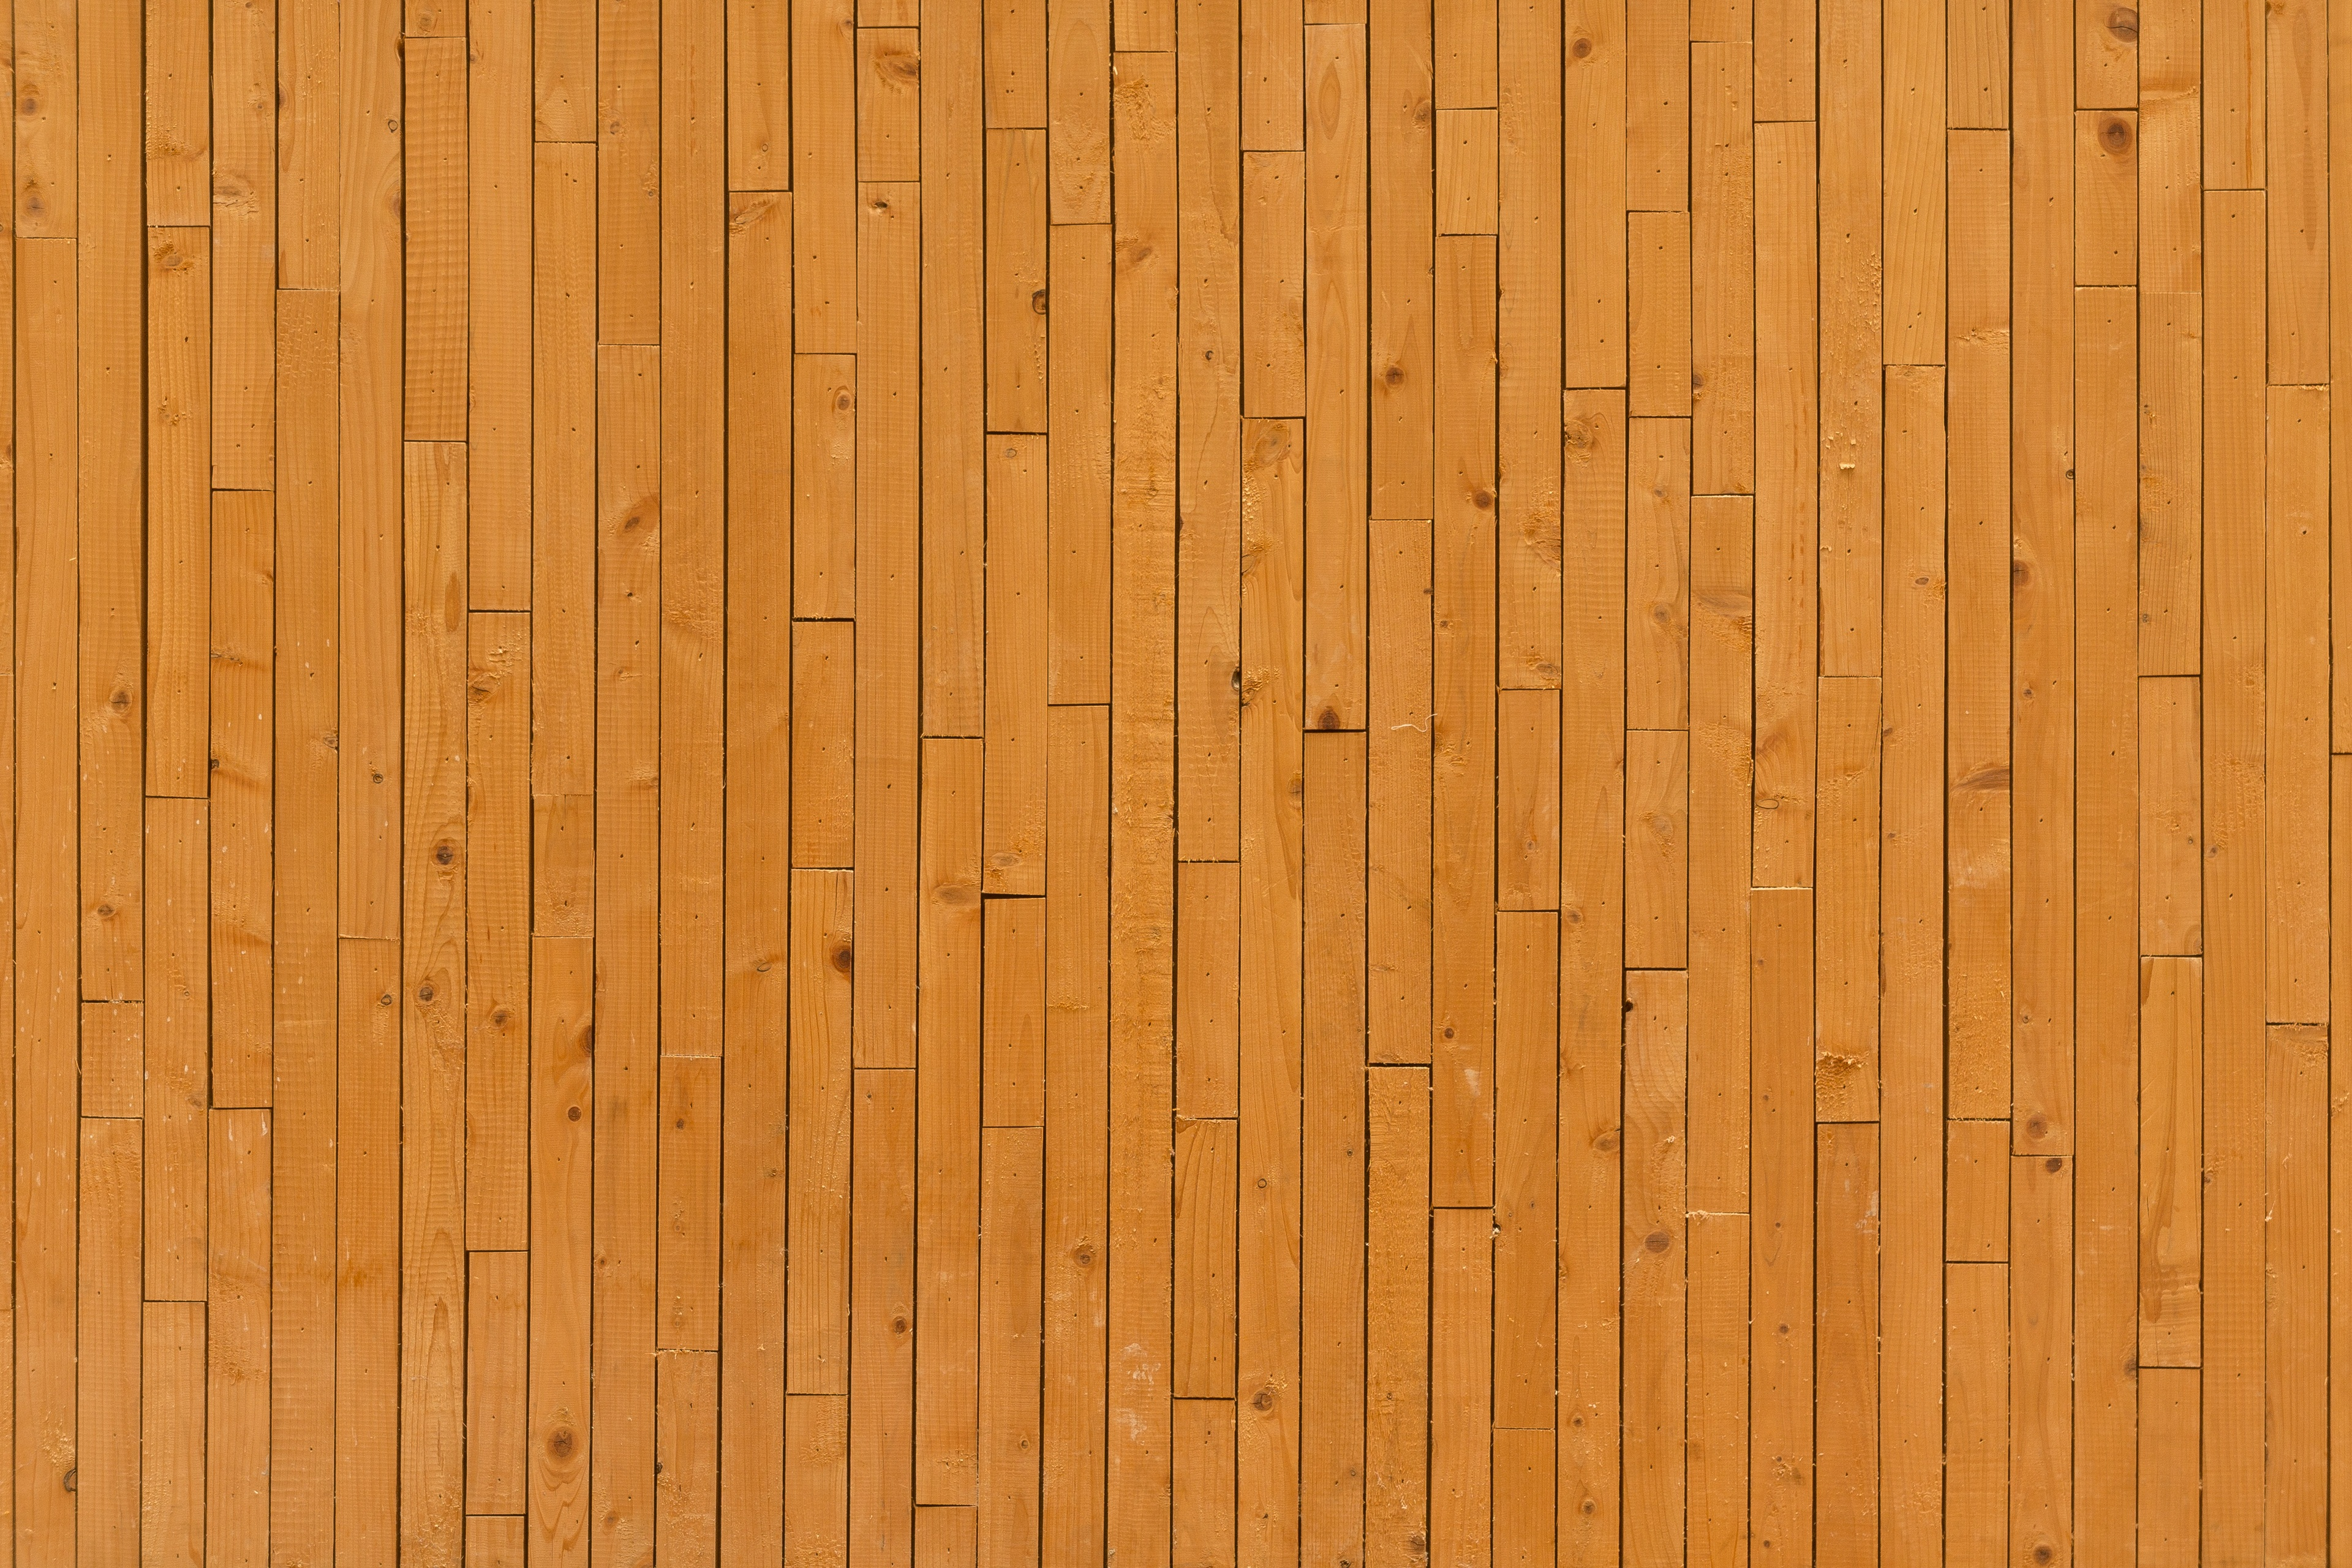 Hd Wallpaper For Mobile 800x1280 4k Wood Texture Hd Others 4k Wallpapers Images